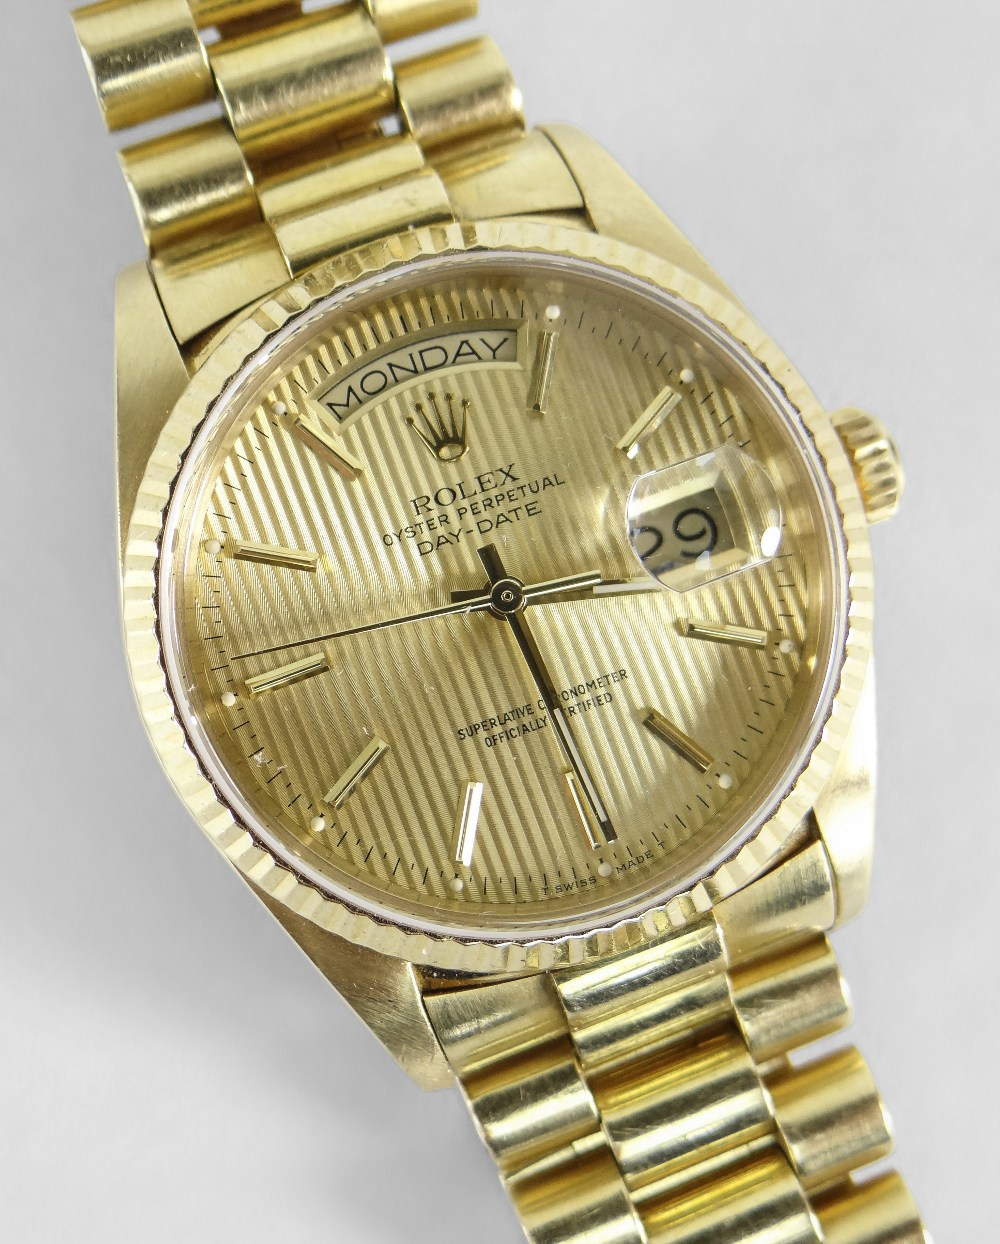 18CT GOLD ROLEX OYSTER PERPETUAL DAY DATE SUPERLATIVE CHRONOMETER WRISTWATCH, the circular dial